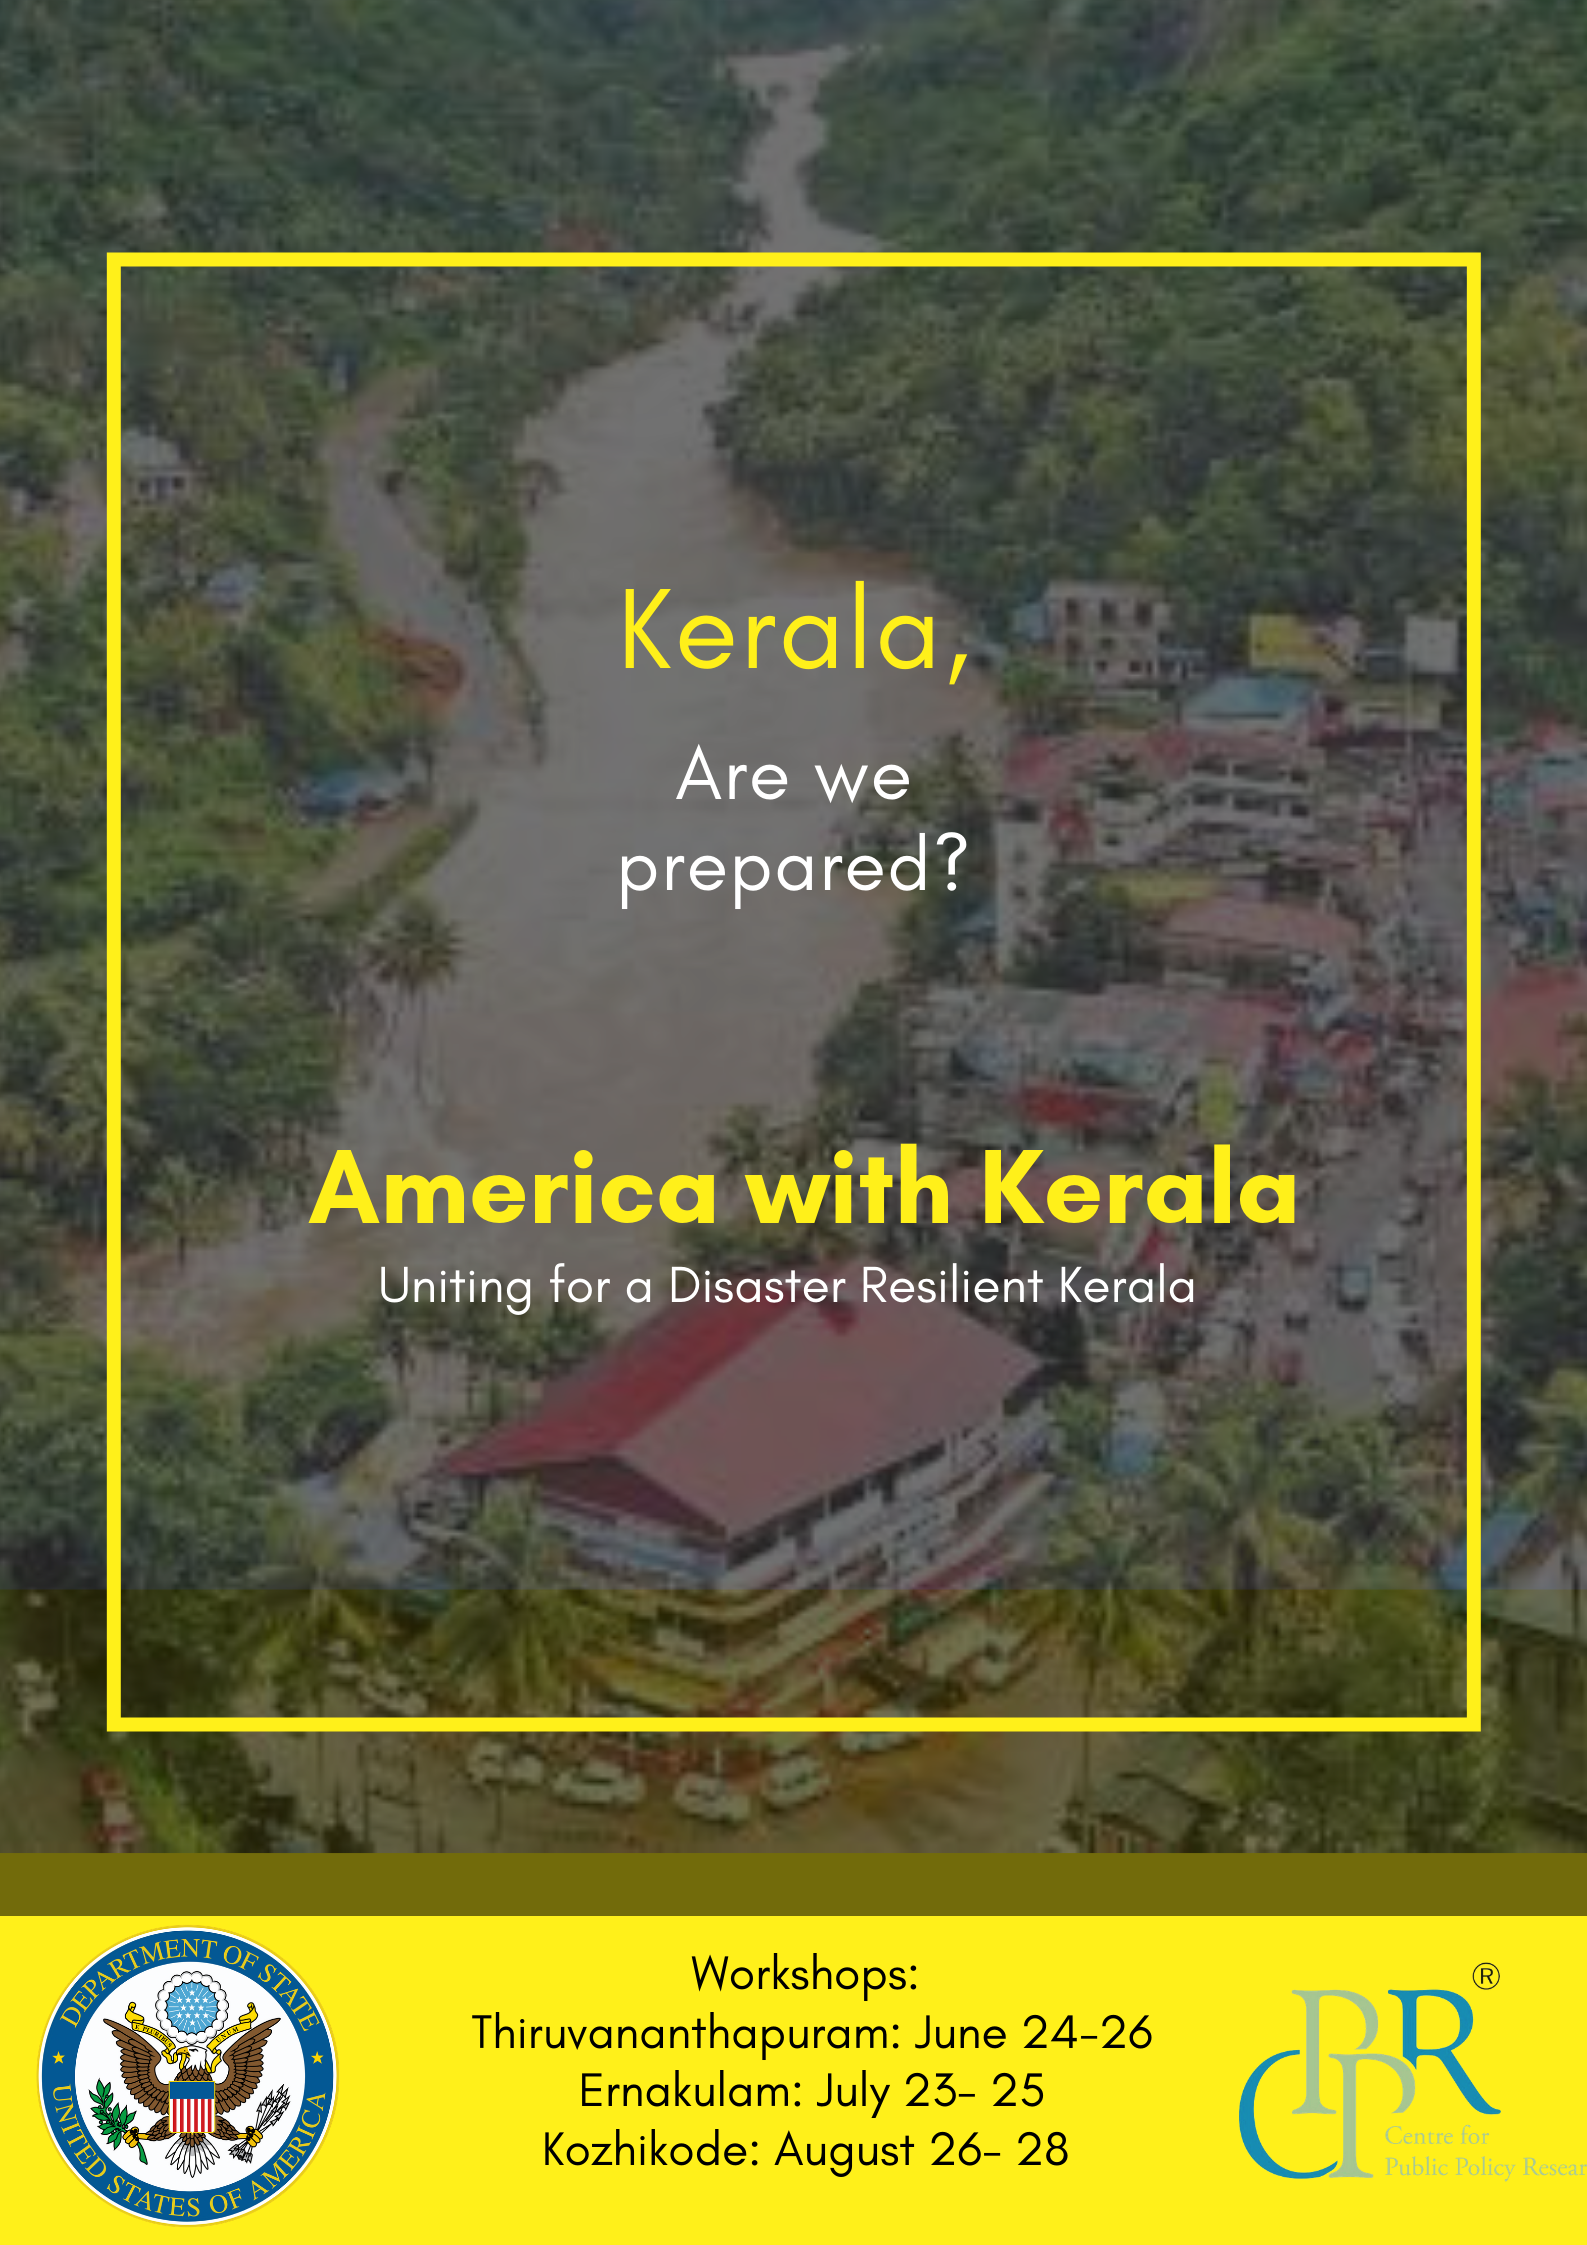 America with Kerala: Event in Kochi - Centre for Public Policy